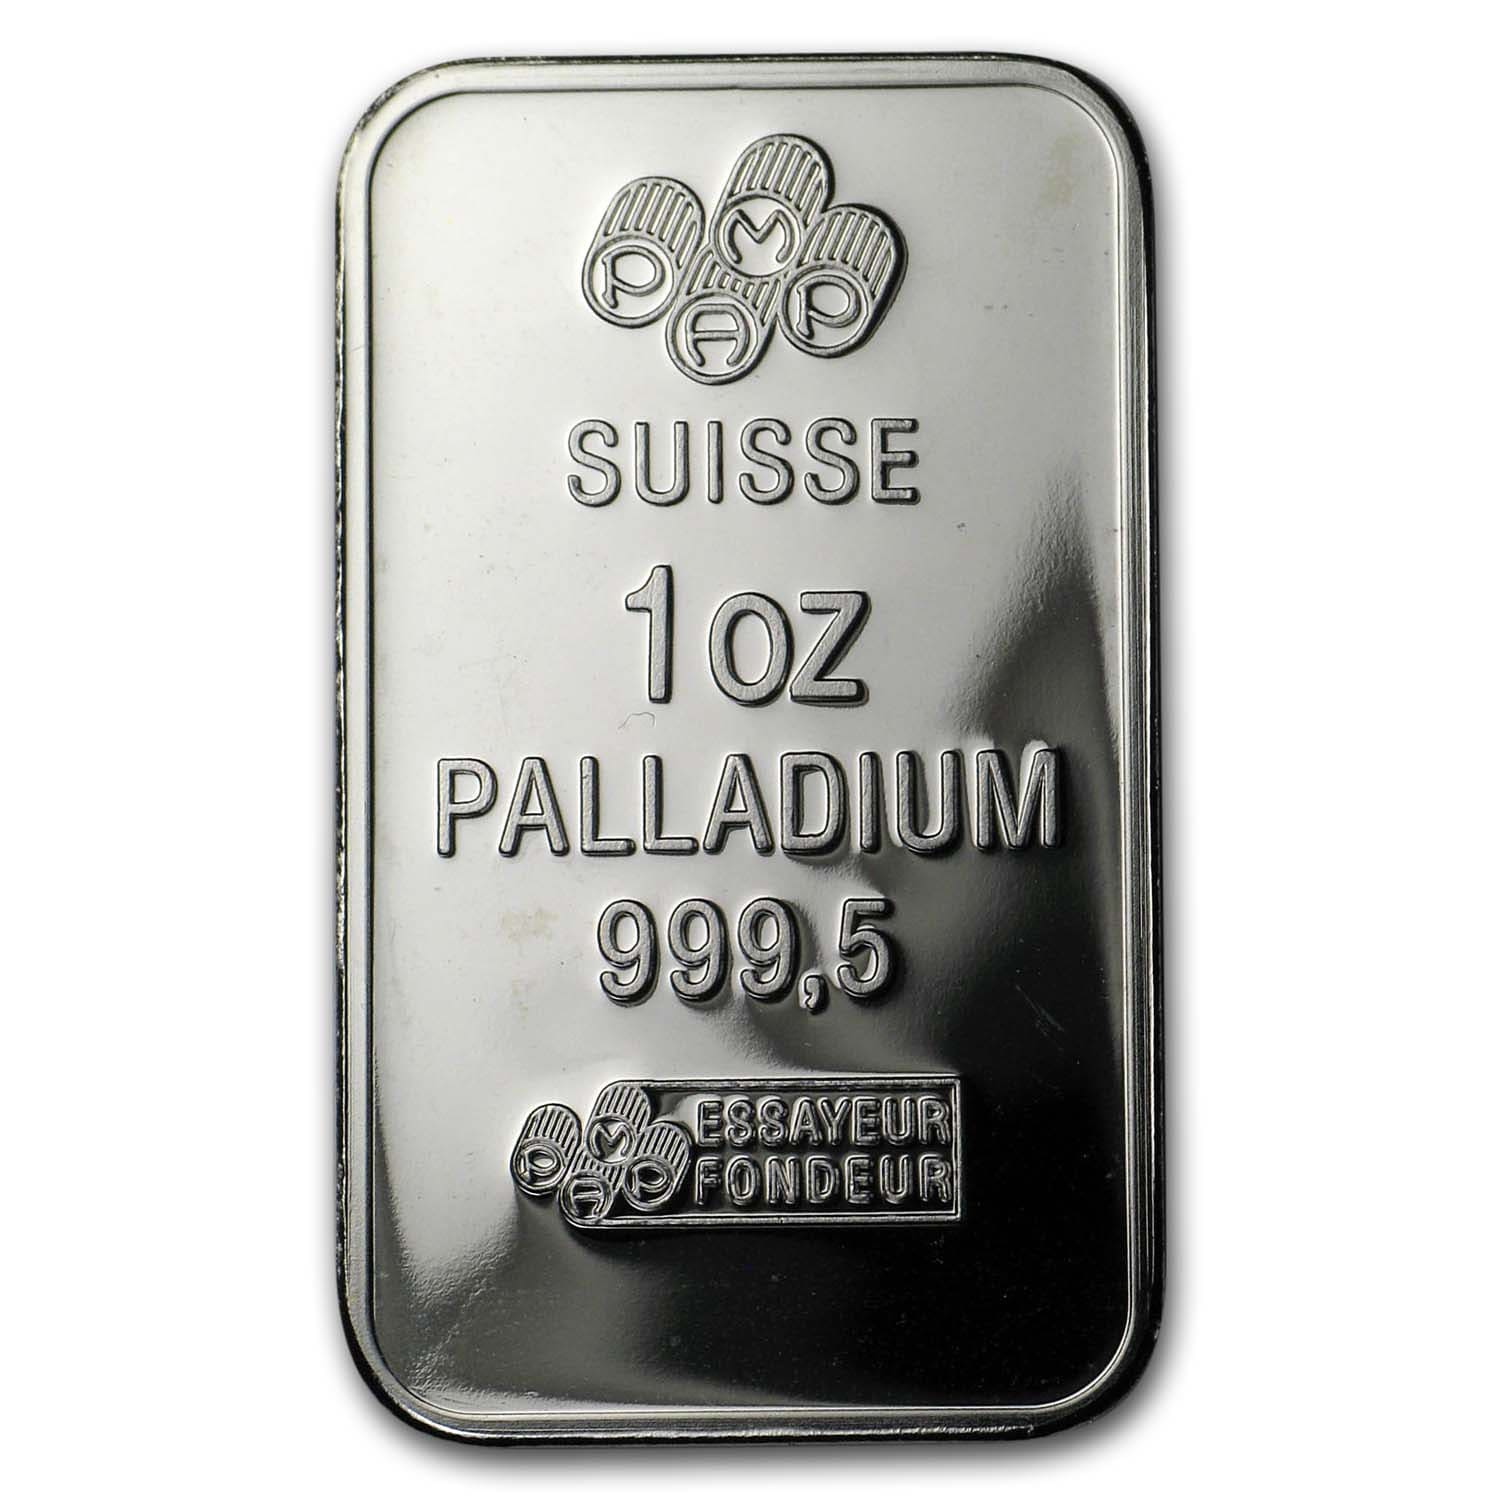 1 oz Palladium Bar - Secondary Market